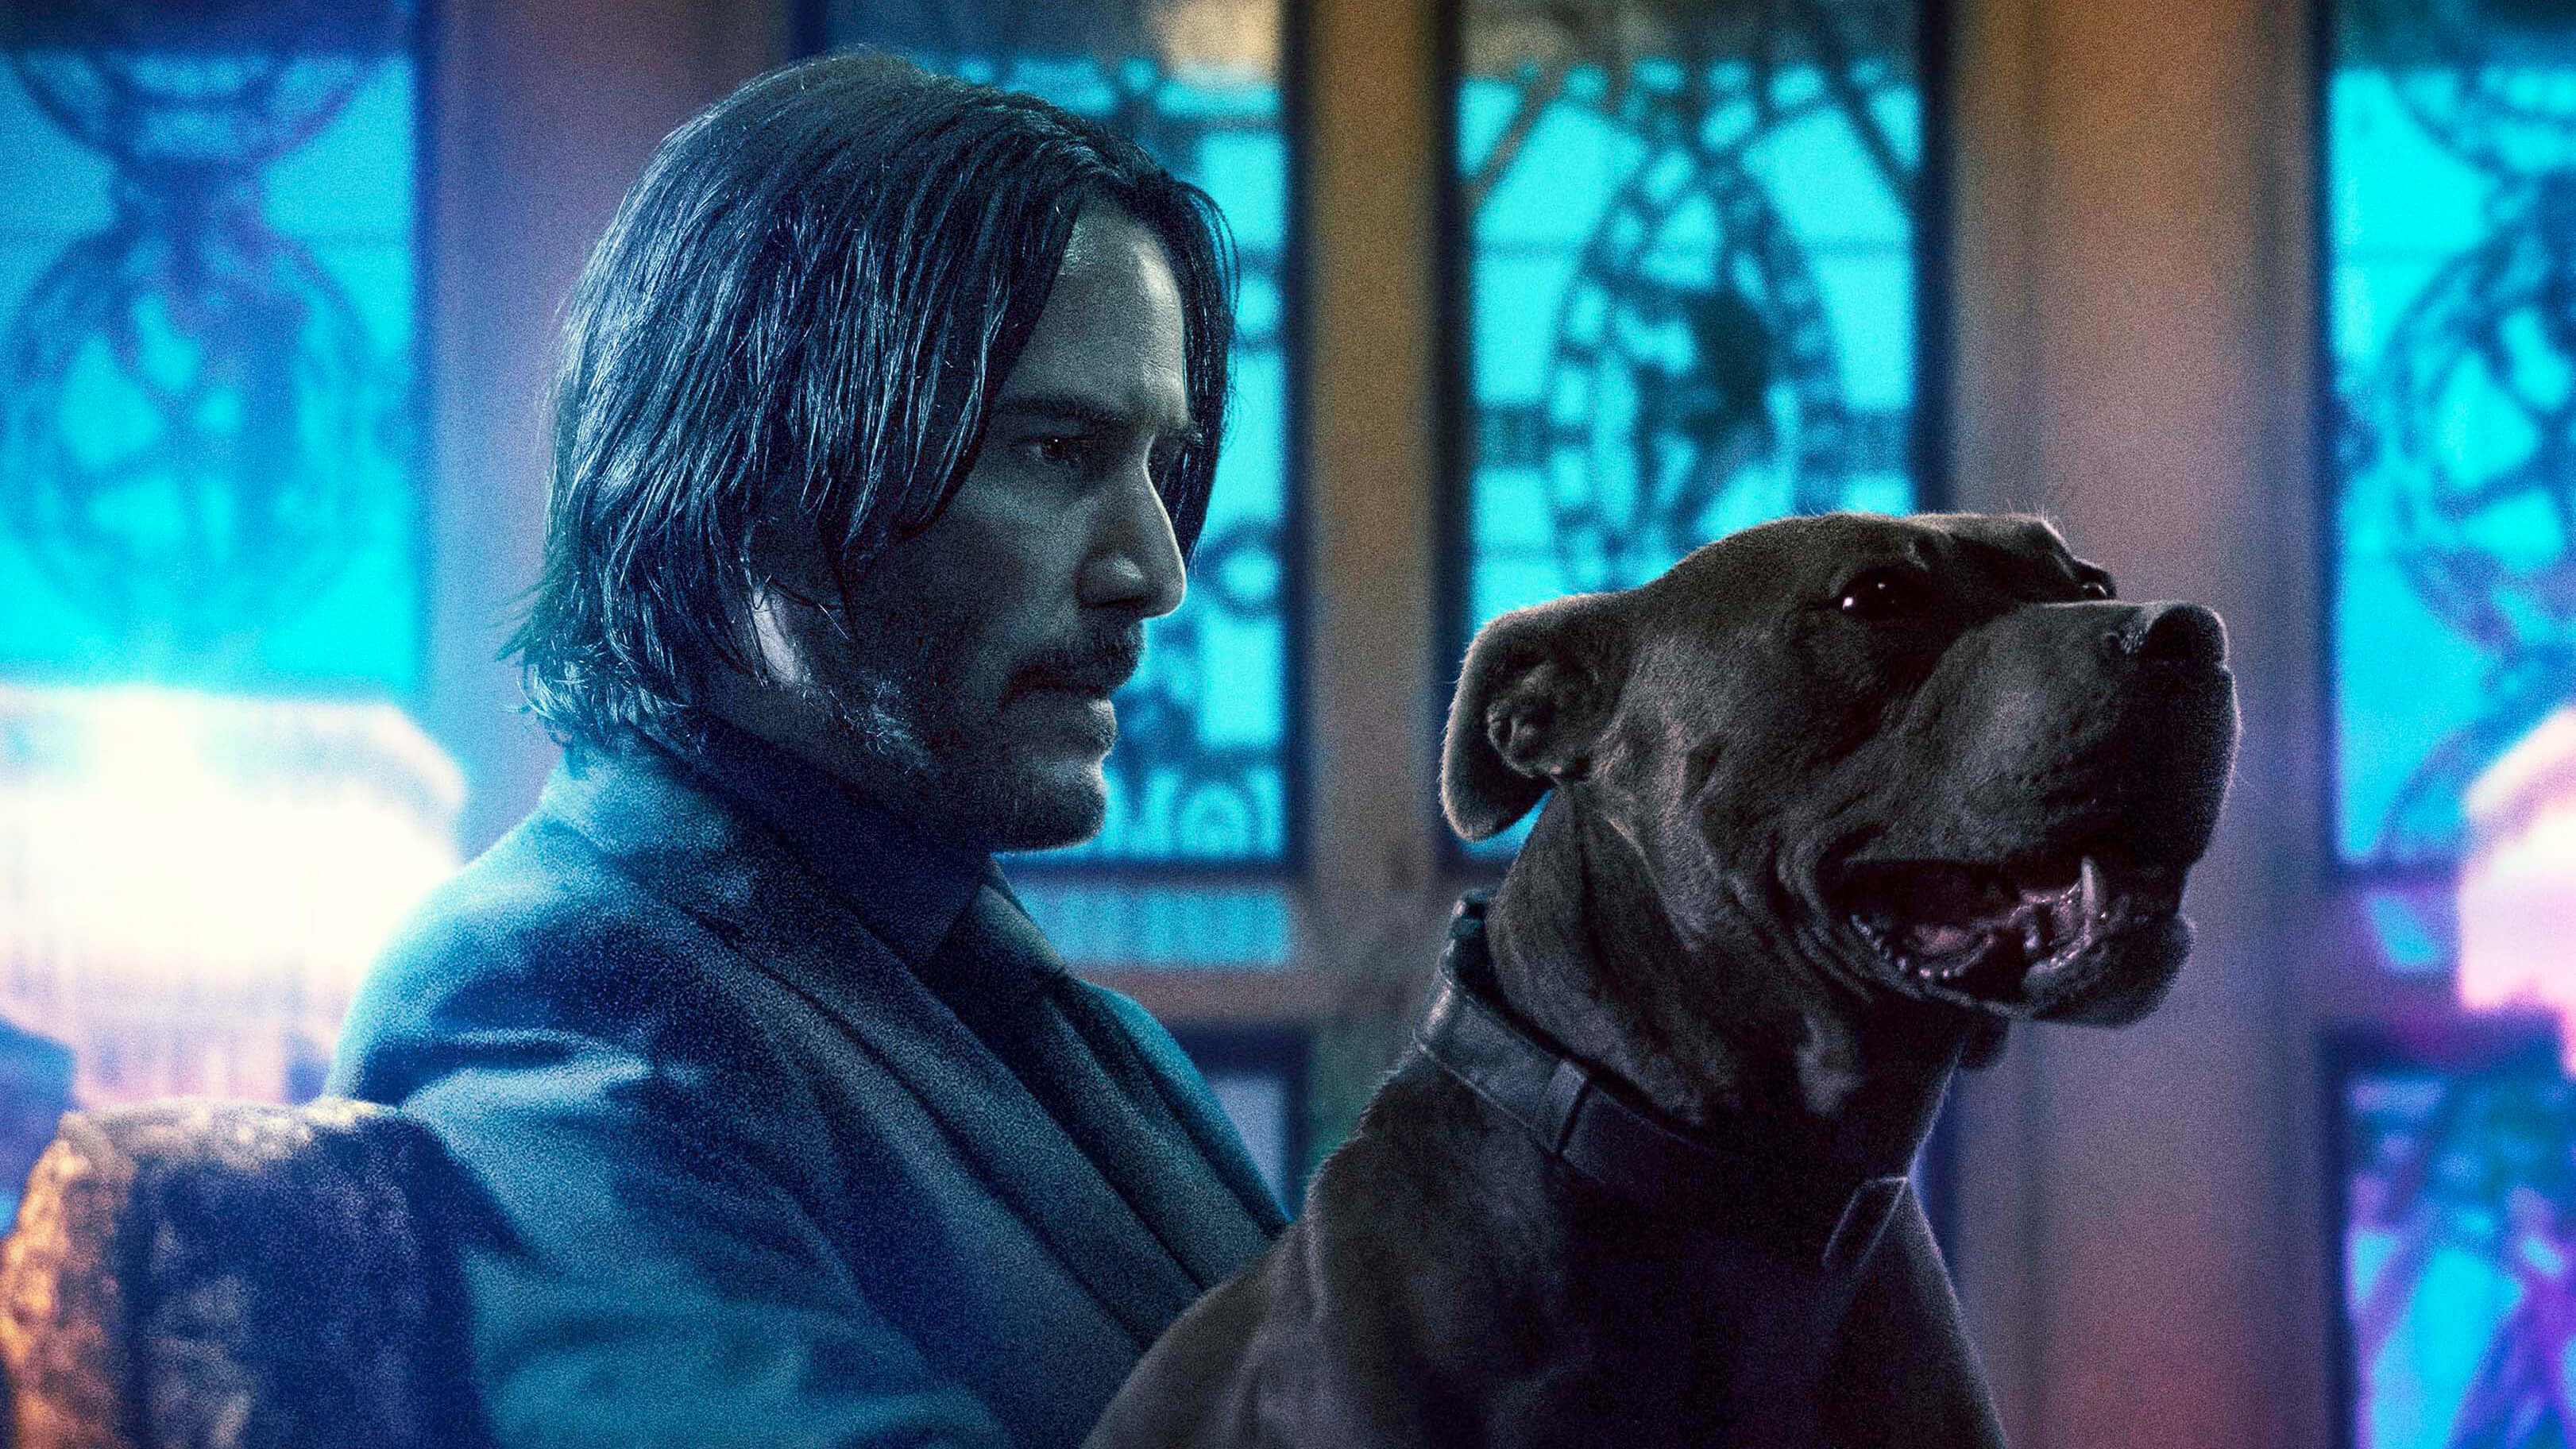 john wick 3 movie wallpaper 68212